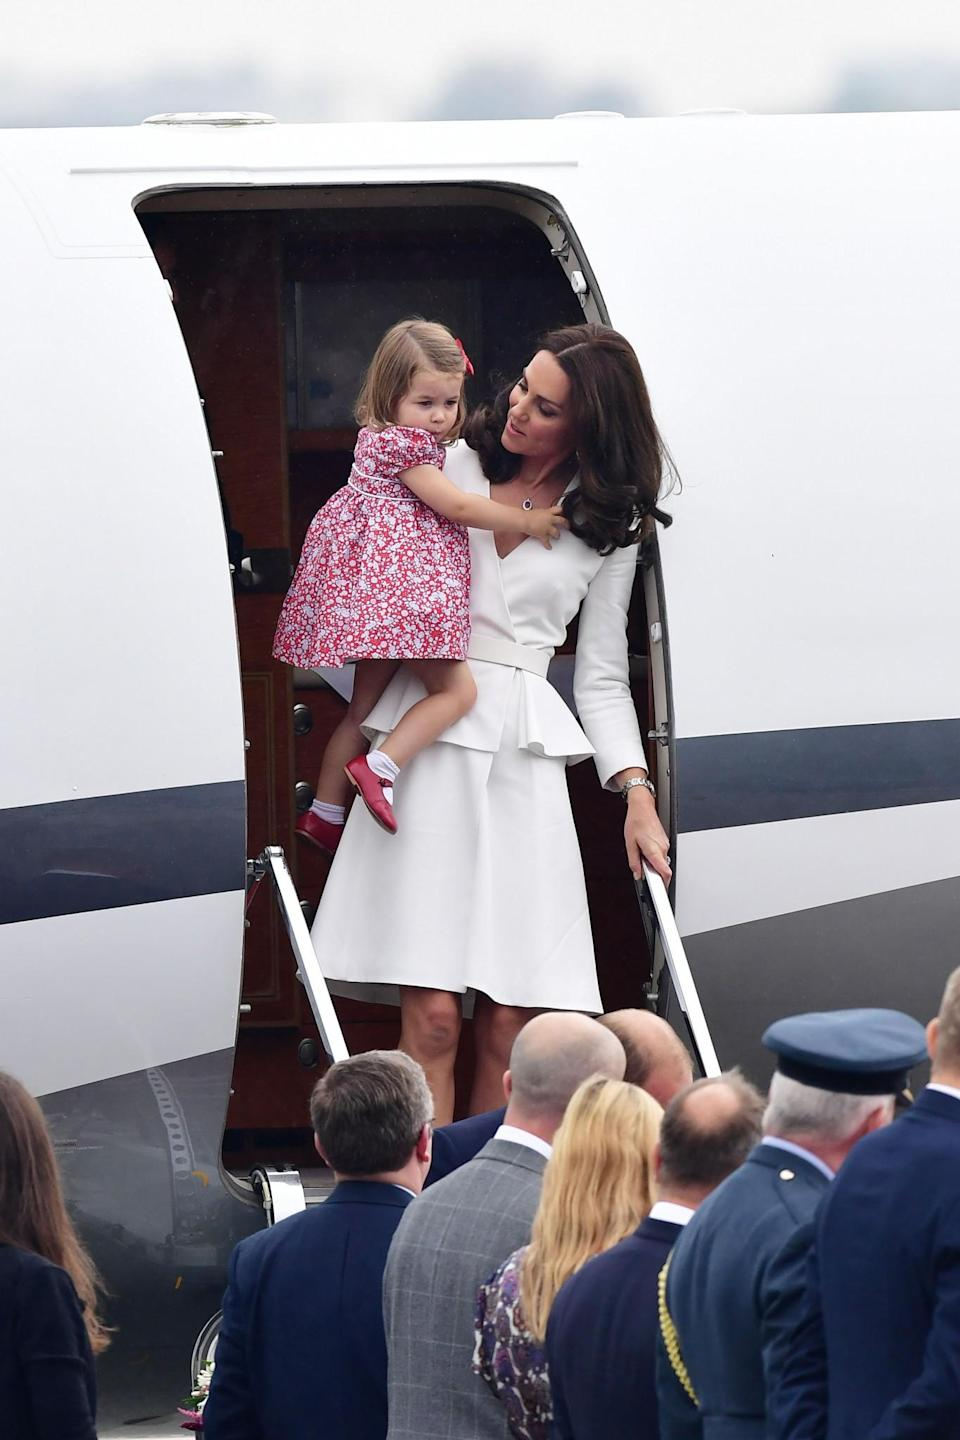 <p><b><b><b>The Duchess of Cambridge left the plane holding Princess Charlotte. The former wore a white Alexander McQueen peplum dress while Princess Charlotte looked adorable in a red, floral dress. Together, the duo made up the colours of the Polish flag. Diplomatic dressing if we ever saw it. <em>[Photo: PA]</em> </b></b></b></p>